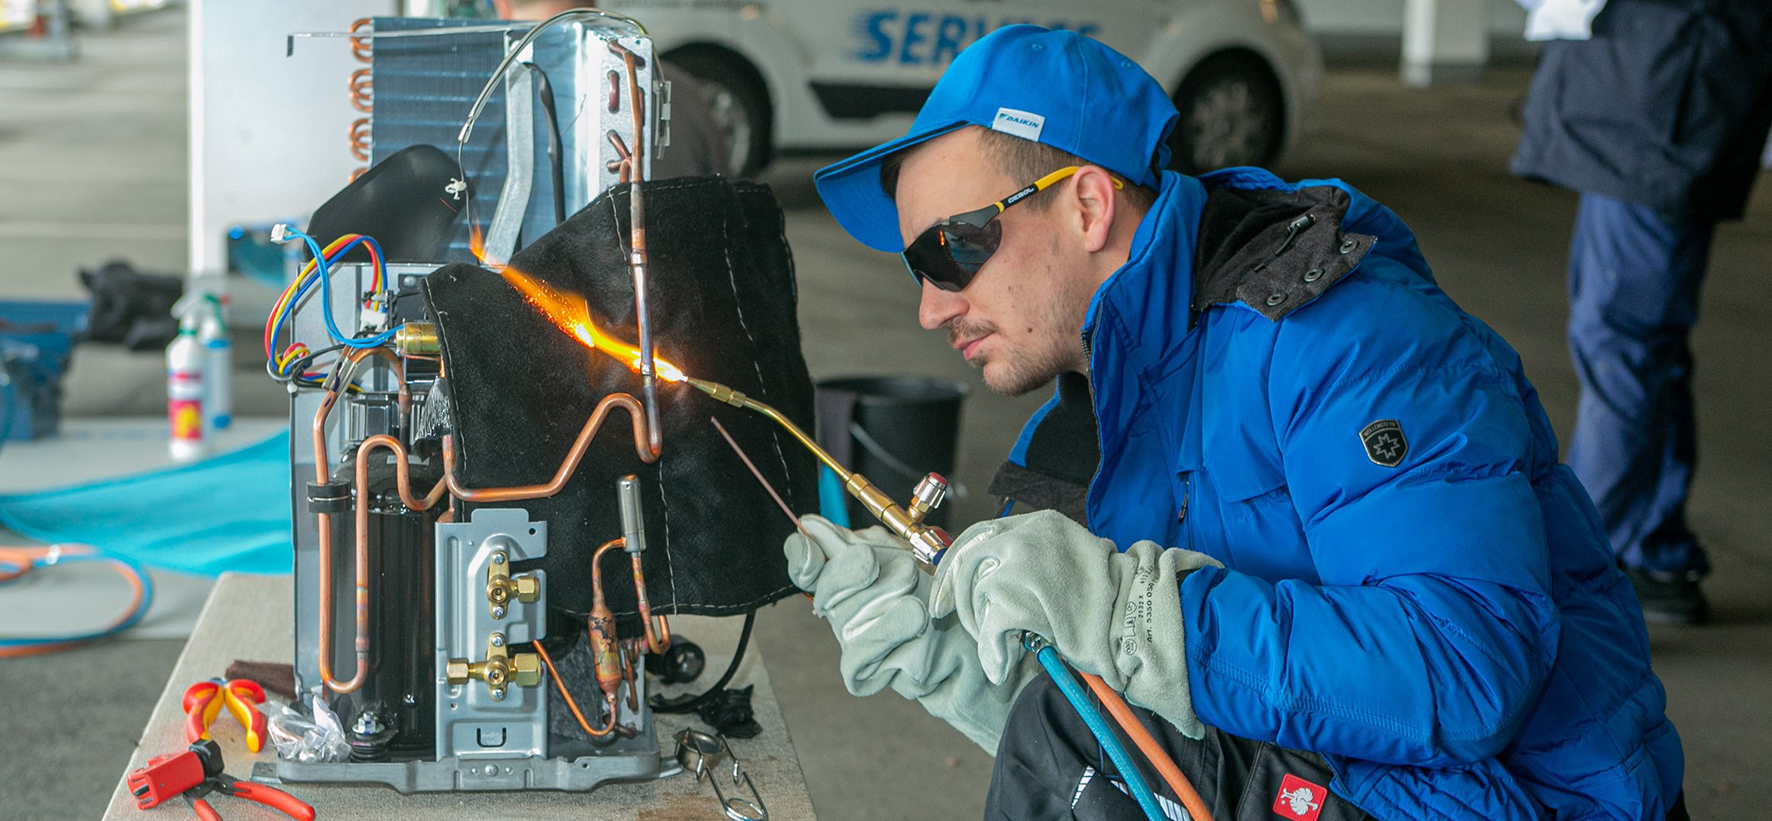 Daikin Service Games Central Europe - Brazing